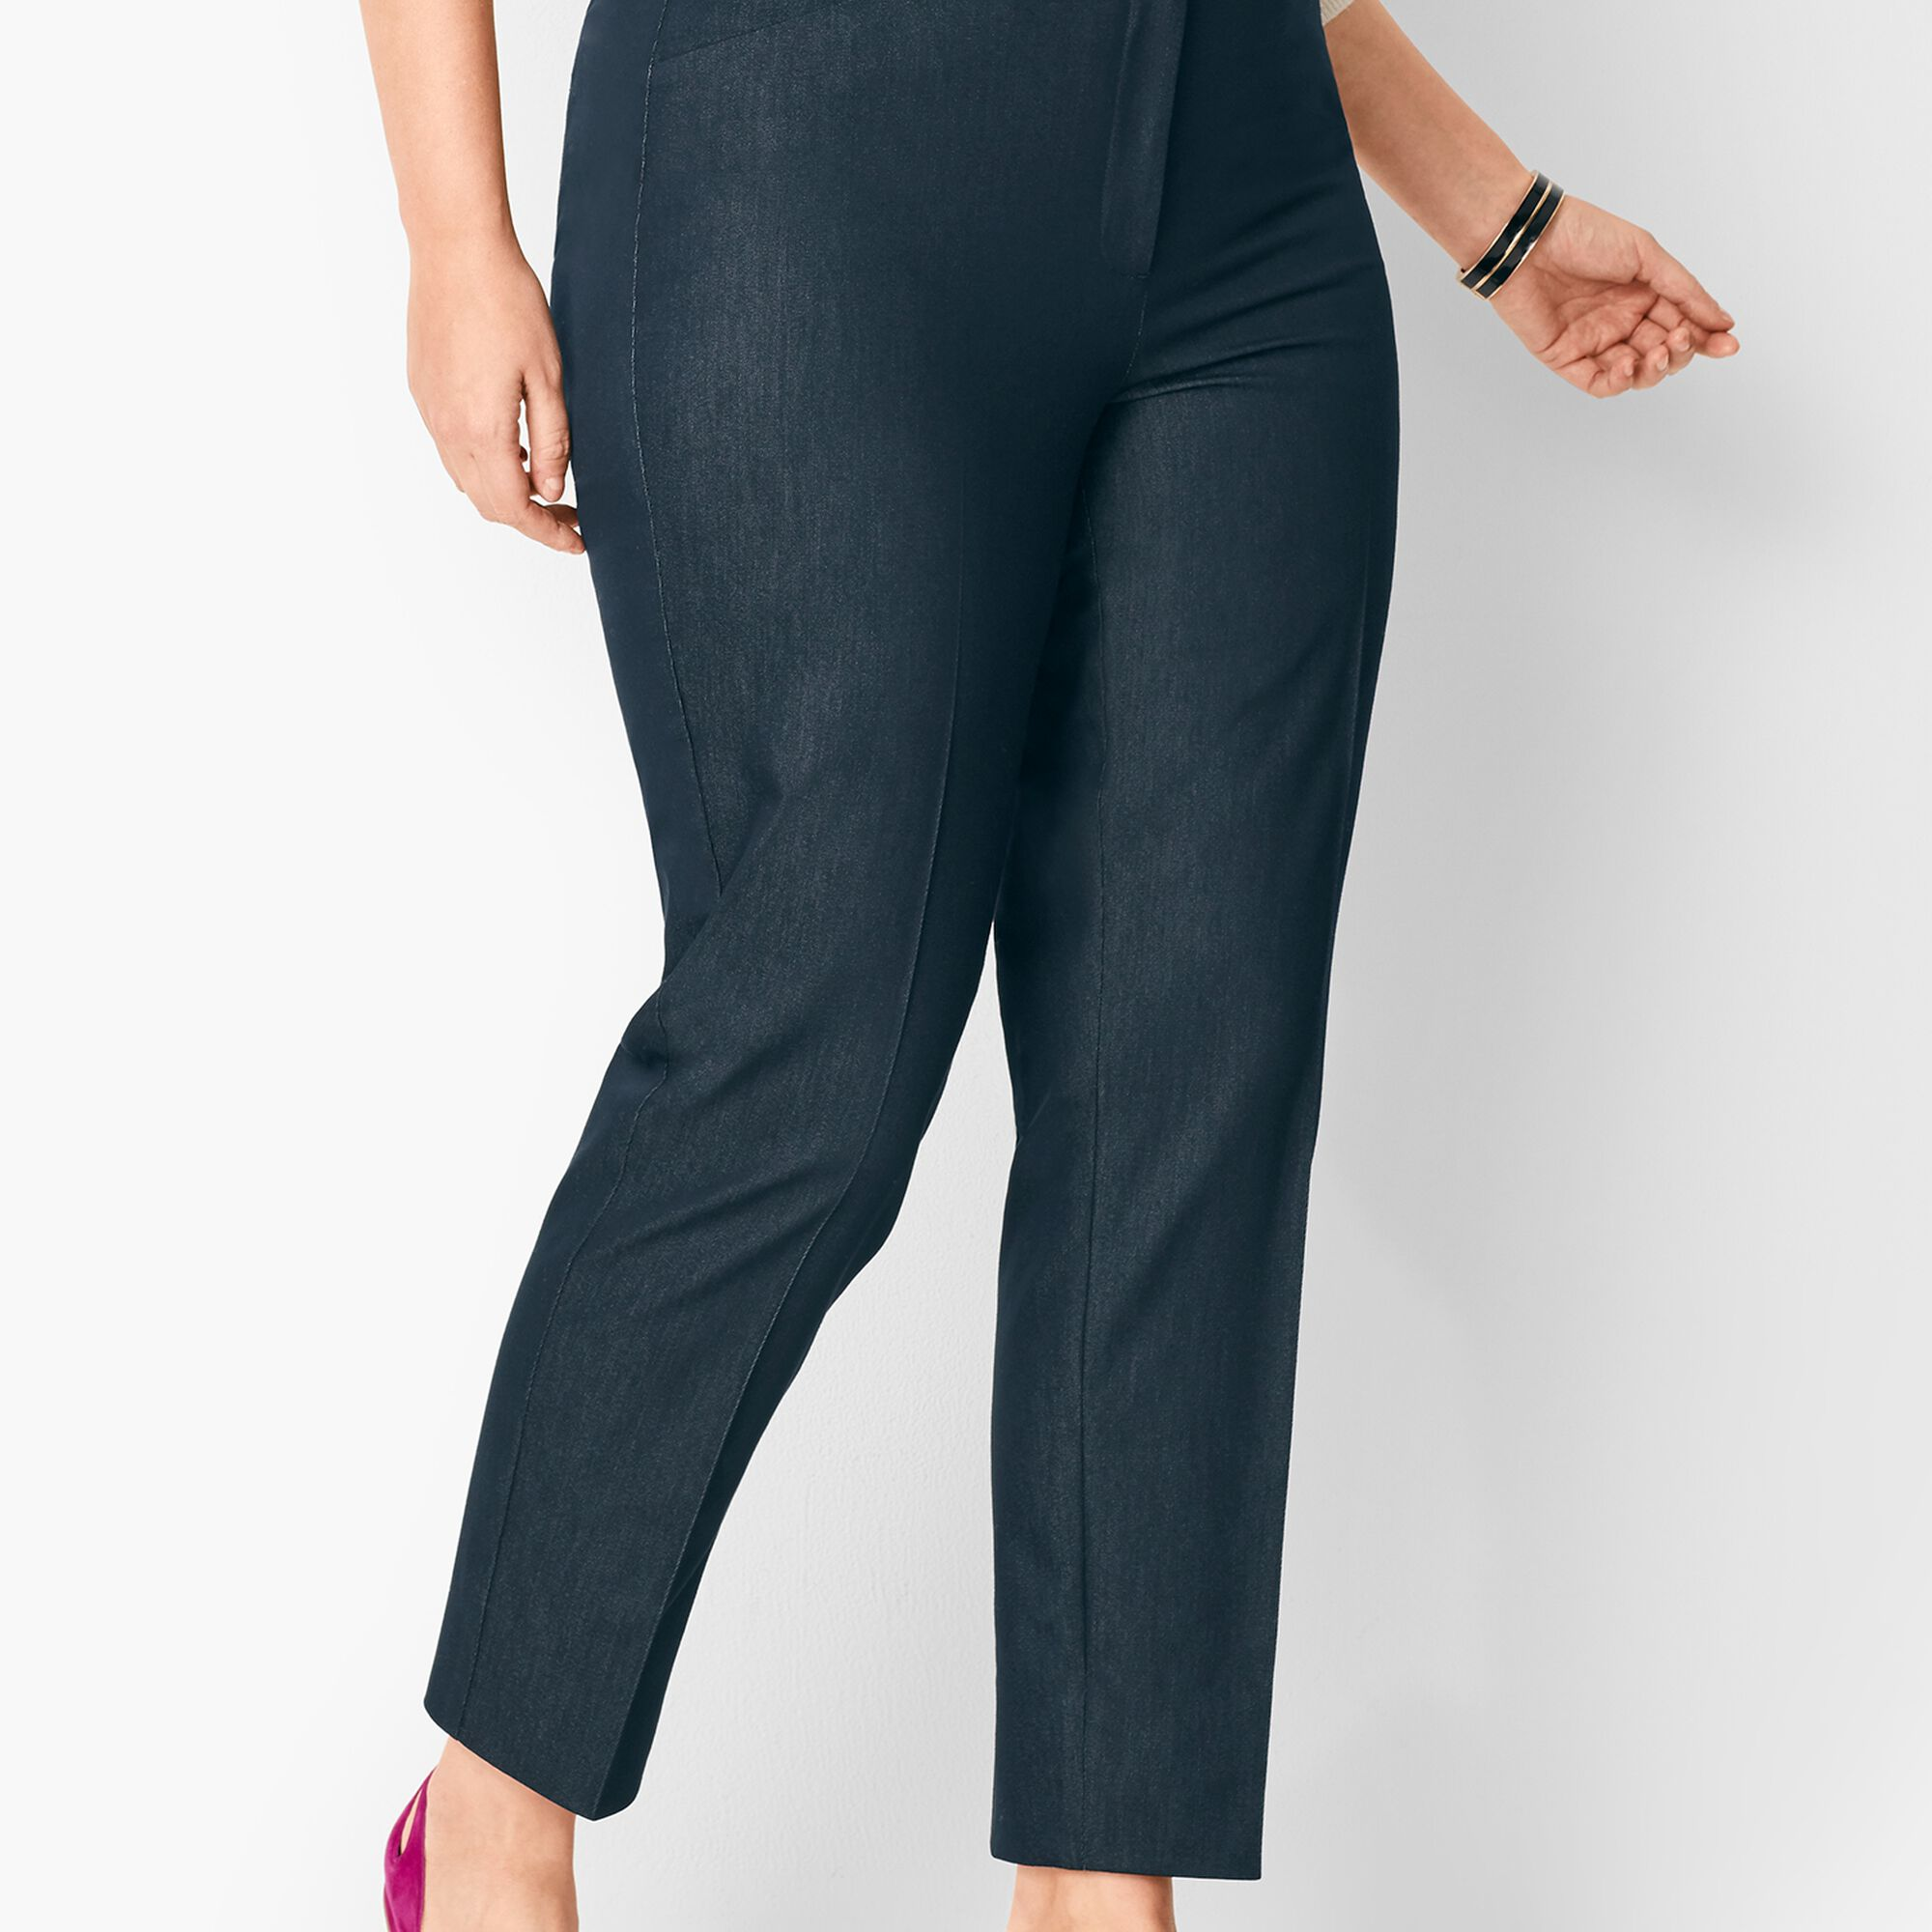 31dcb30da6 Plus Size High-Waist Tailored Ankle Pants - Polished Denim Opens a New  Window.